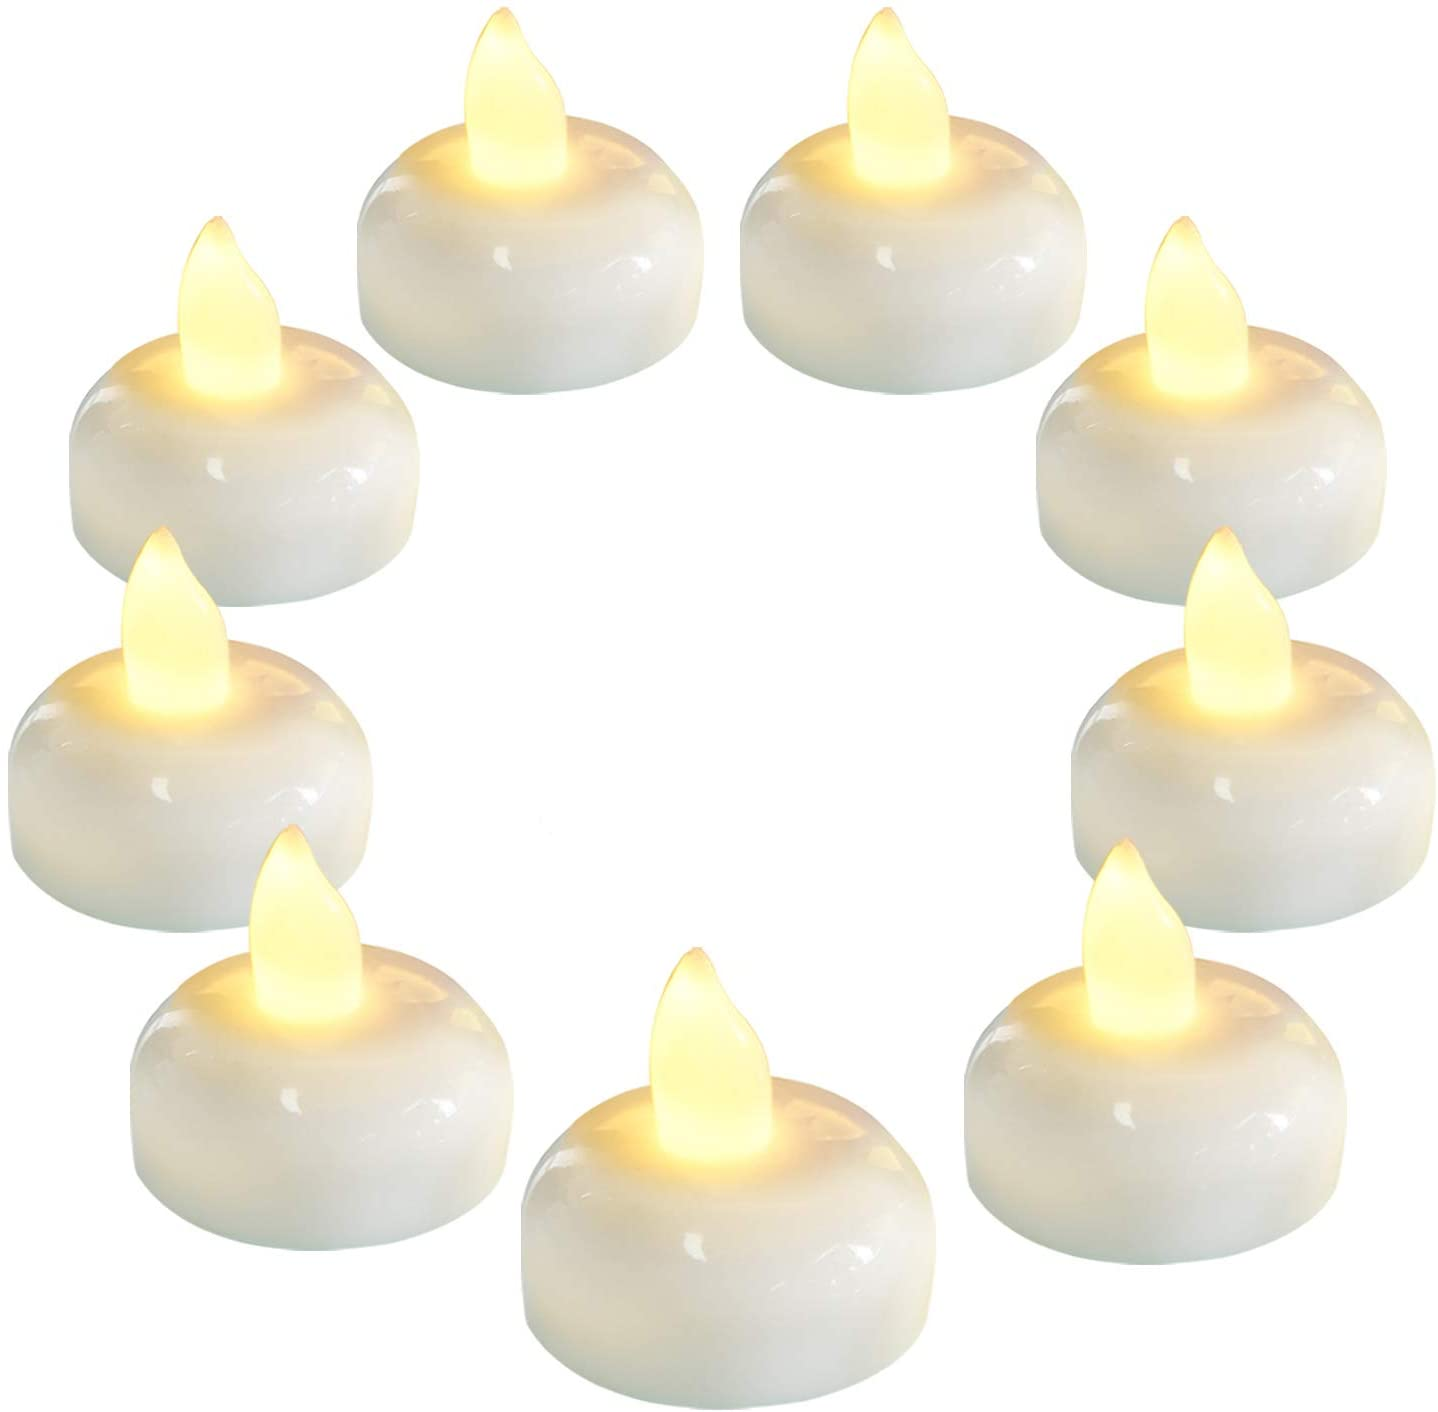 Homemory 36 Pack Flameless Floating Candles, Warm White Led Flickering Tealight Candles in Bulk, Decor for Wedding, Party, Centerpiece, Pool, Christmas